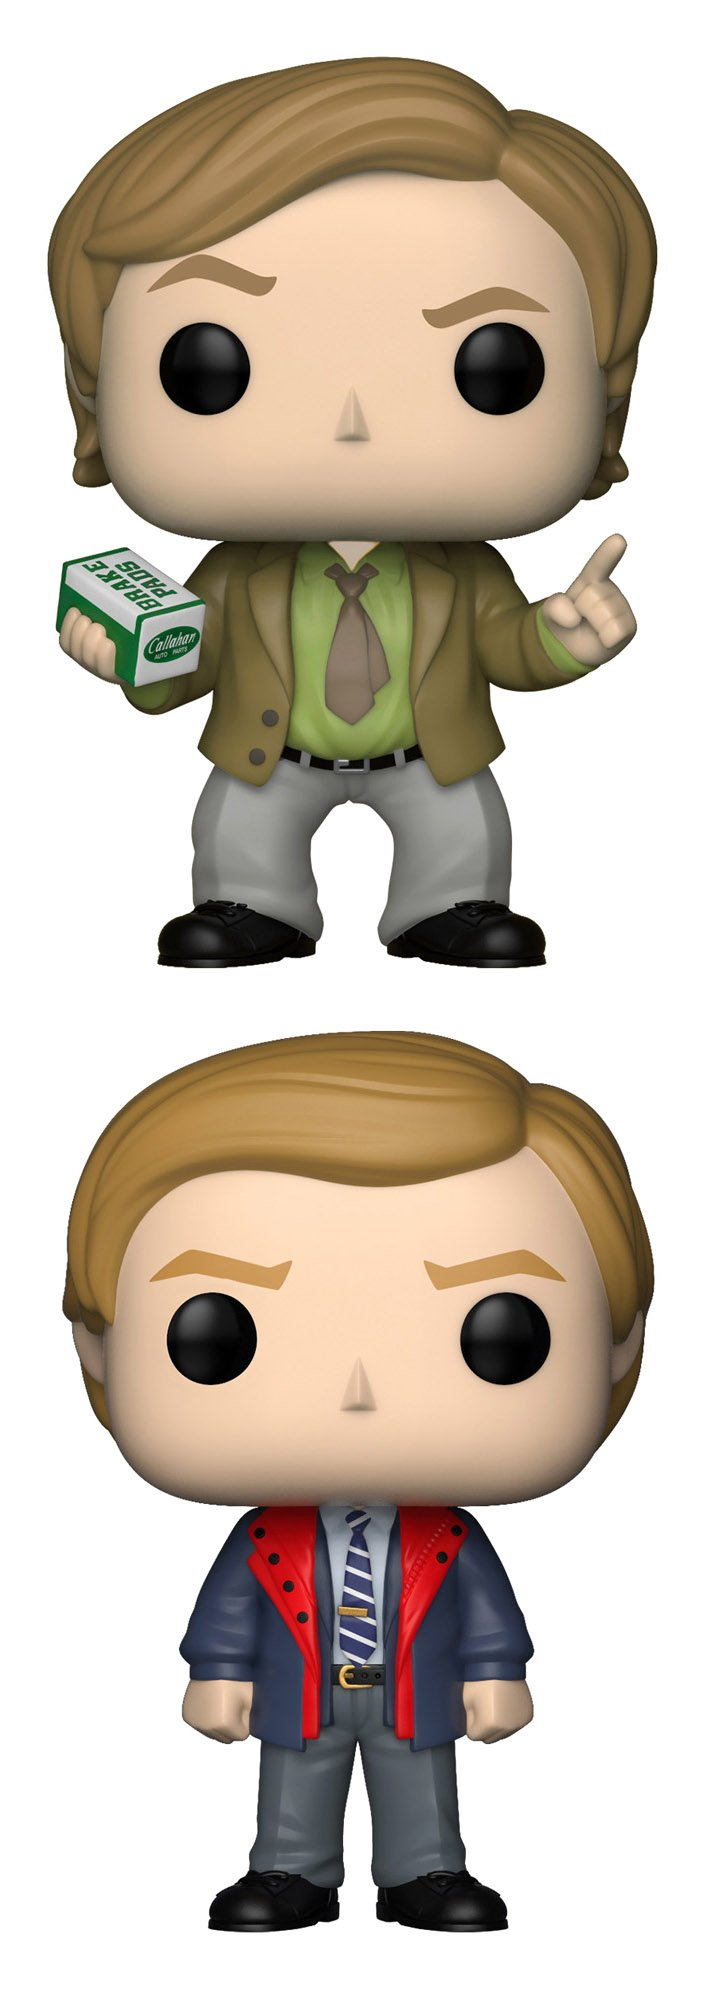 Funko Movies: POP! Tommy Boy Collectors Set - Richard & Tommy by Funko